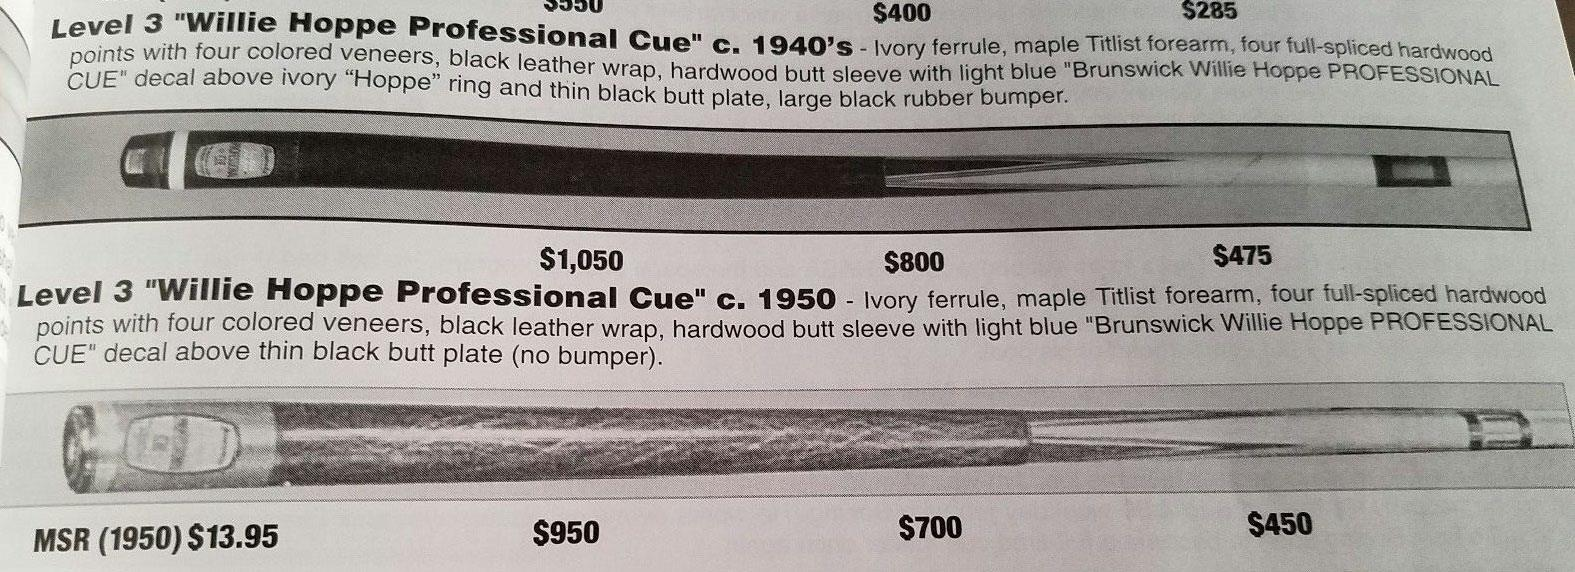 brunswick-willie-hoppe-pool-cue-value.jpg